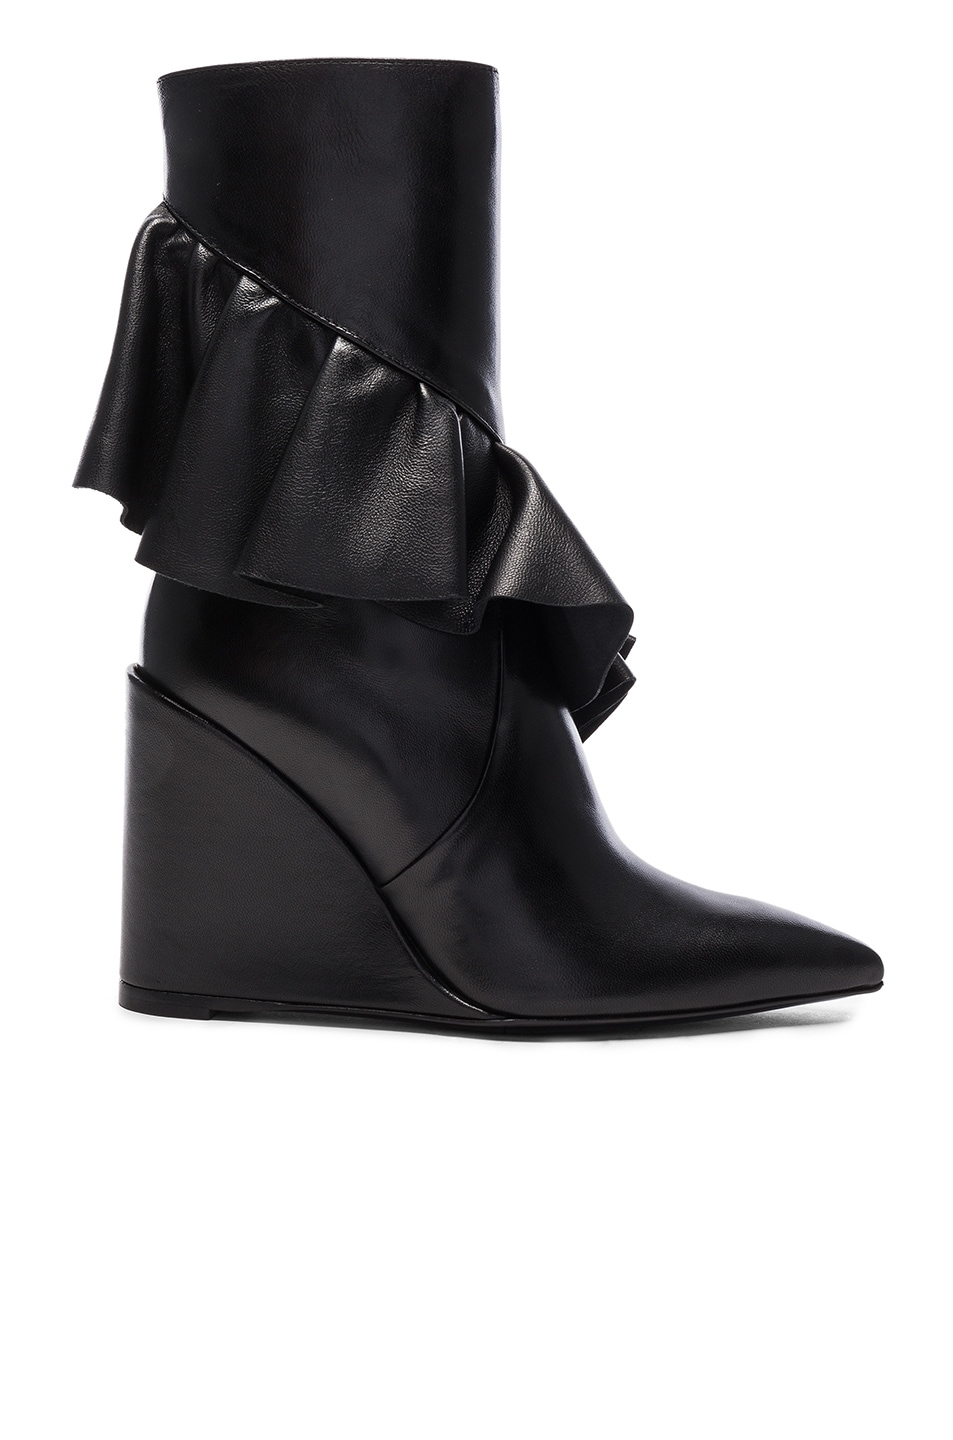 Image 1 of JW Anderson Mid Calf Leather Ruffle Boots in Black